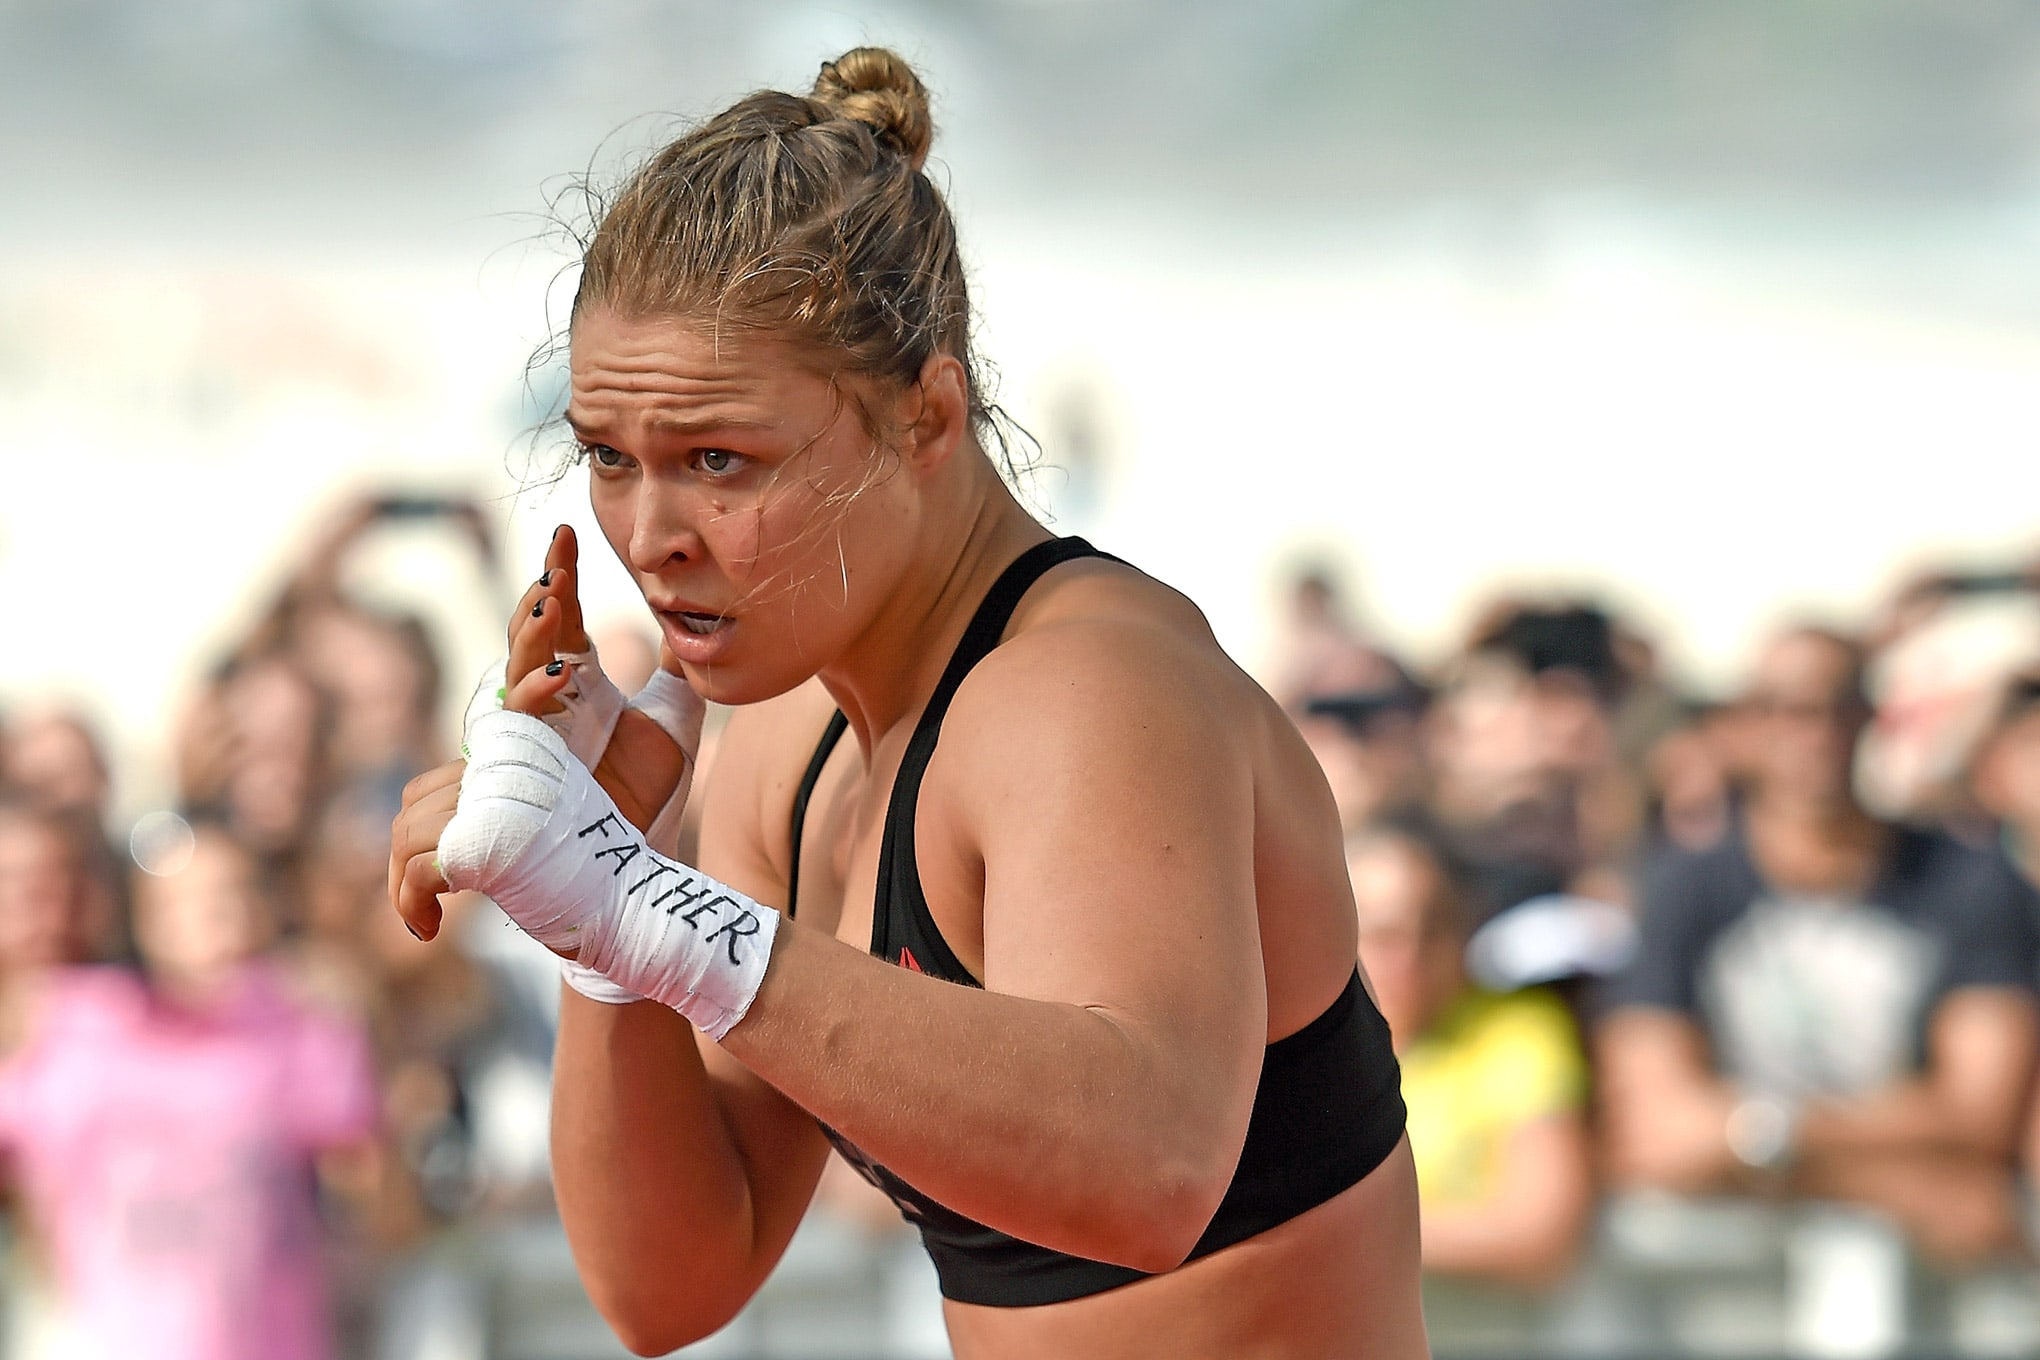 Ronda rousey backgrounds ronda rousey wallpaper ronda rousey hd